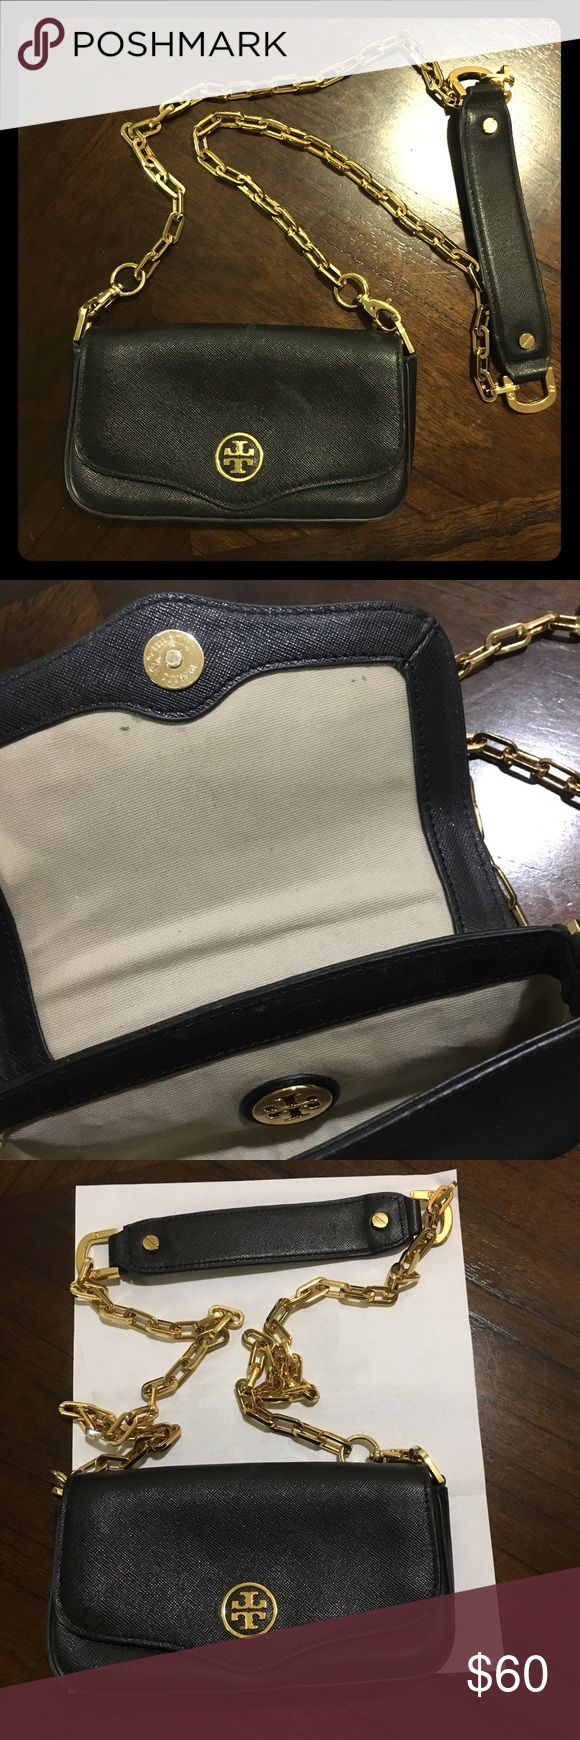 Tory Burch Robinson Mini Crossbody Super cute mini Cross-body bag from Tory Burch Robinson collection. About 7.5in wide - see photo for comparison with letter size paper (8.5in wide). Gold hardware details. Tory Burch Bags Crossbody Bags